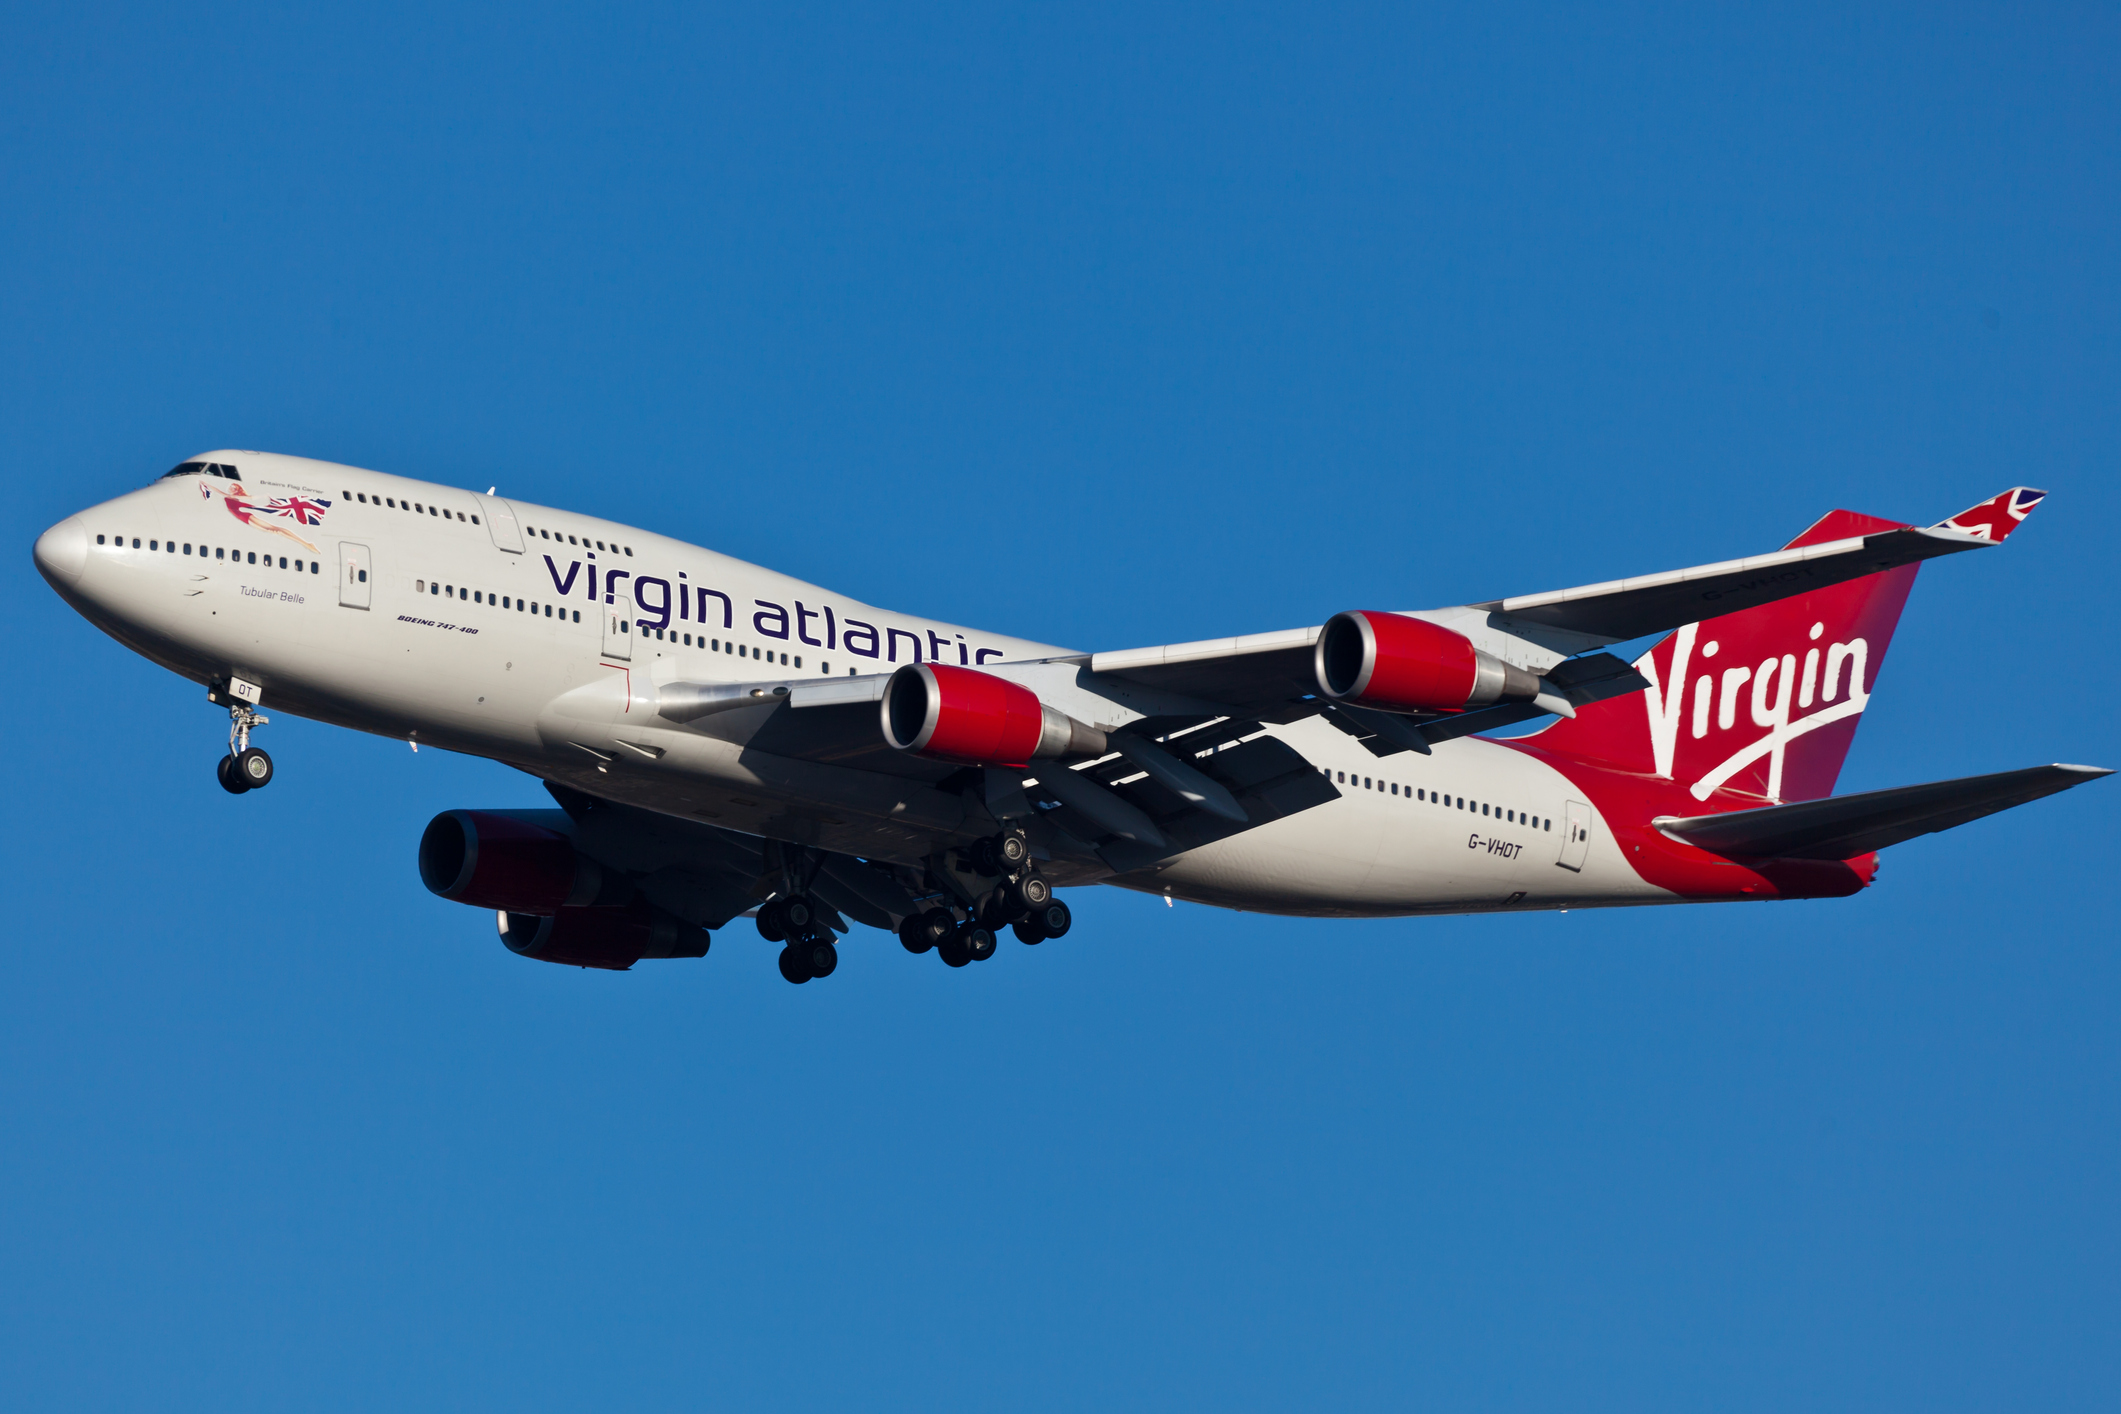 With the Delhi-Manchester service, Virgin Atlantic would be offering over six lakh seats a year between India and the UK. (Photo: iStock)